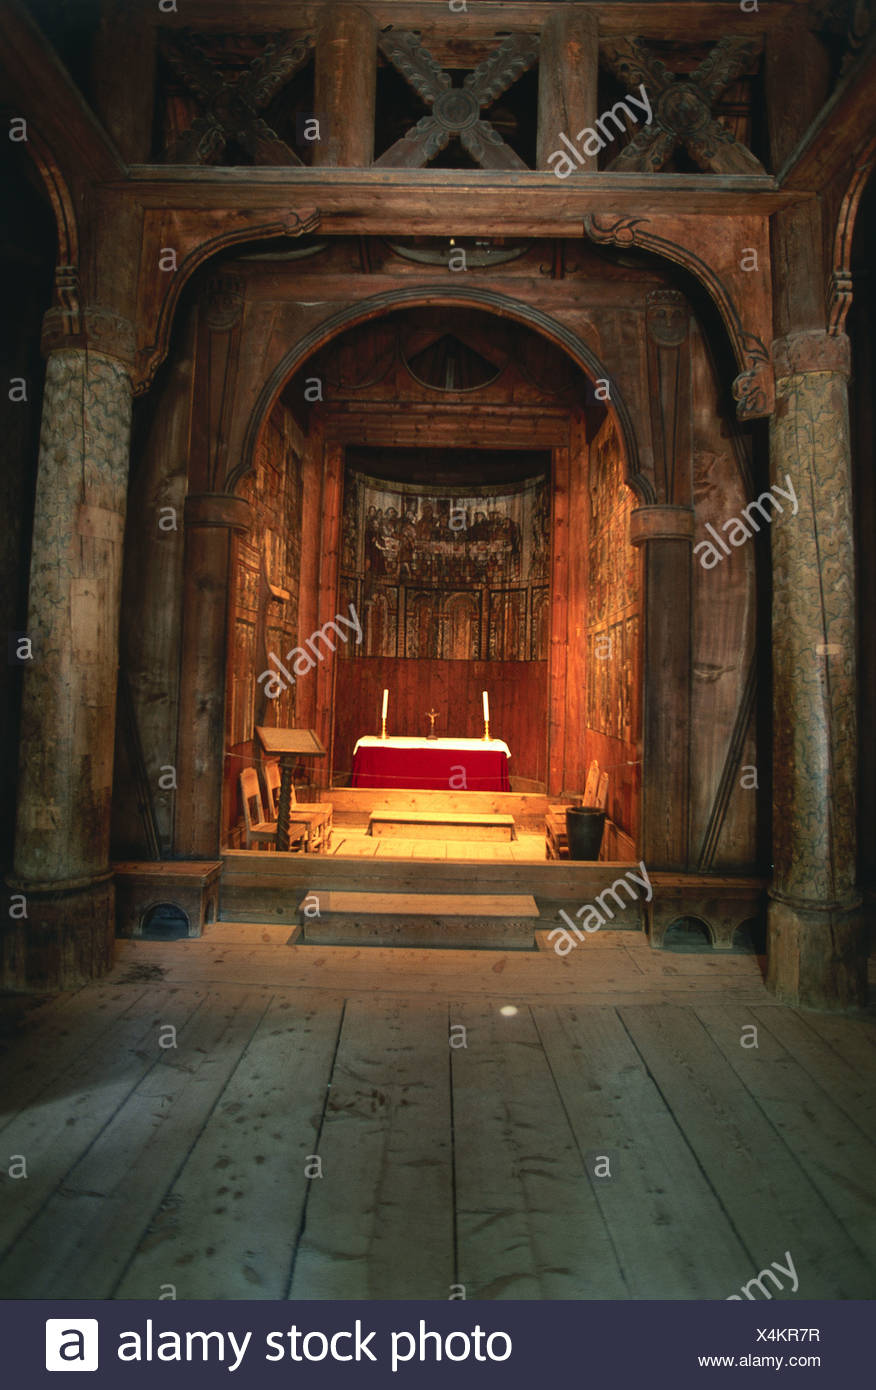 Norway, Bygdoy, Norsk Folkemuseum, Gol stave church, altar inside medieval 13th-century church, built in Hallingdal on 1200 - Stock Image